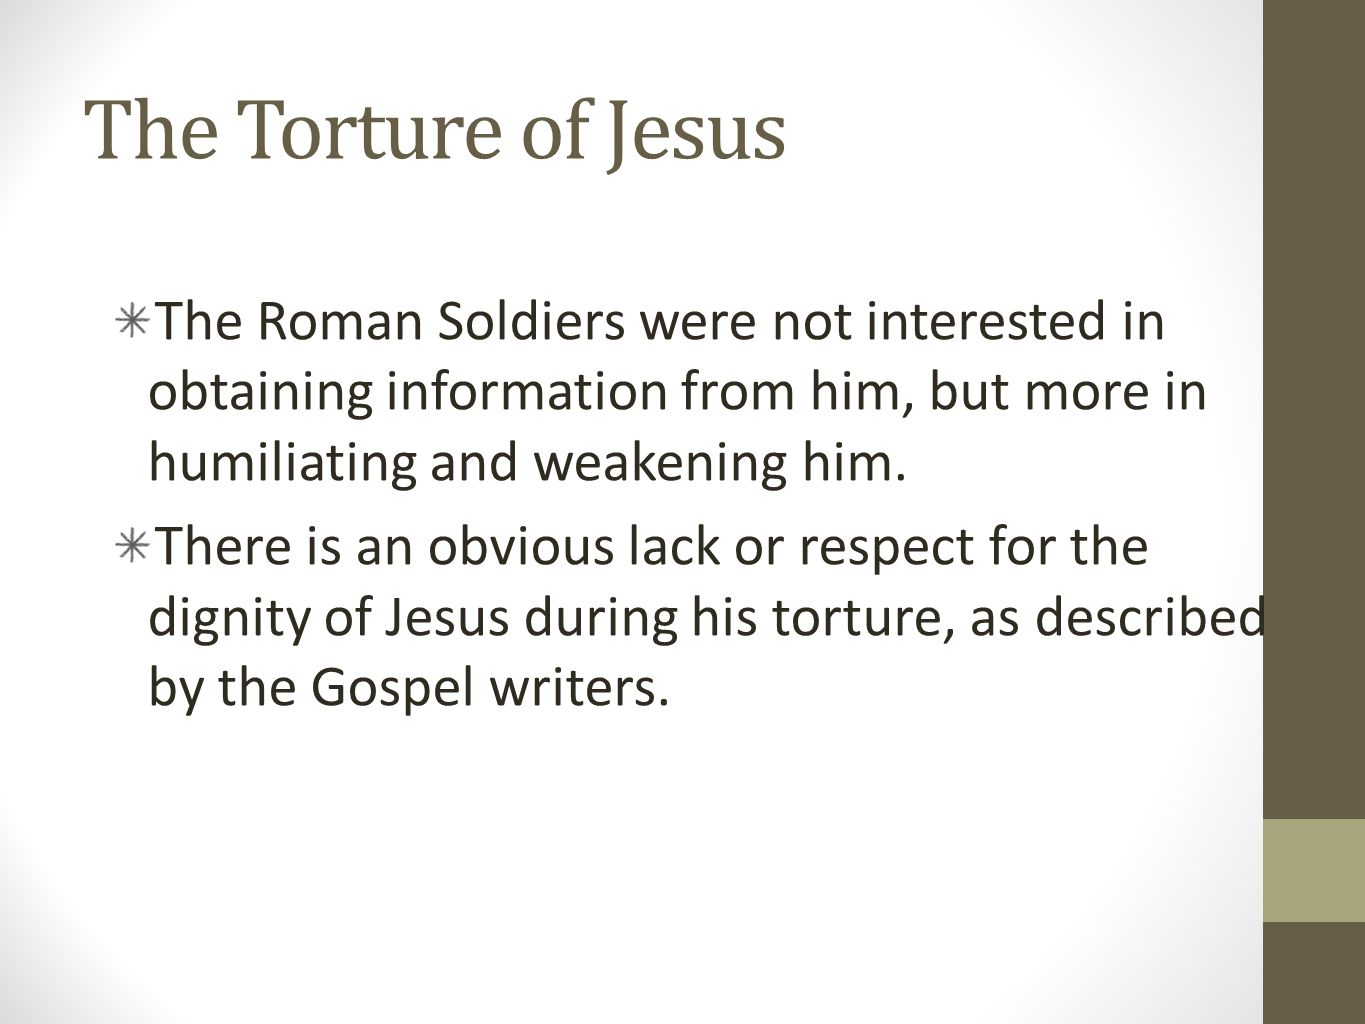 The Torture of Jesus The Roman Soldiers were not interested in obtaining information from him, but more in humiliating and weakening him.